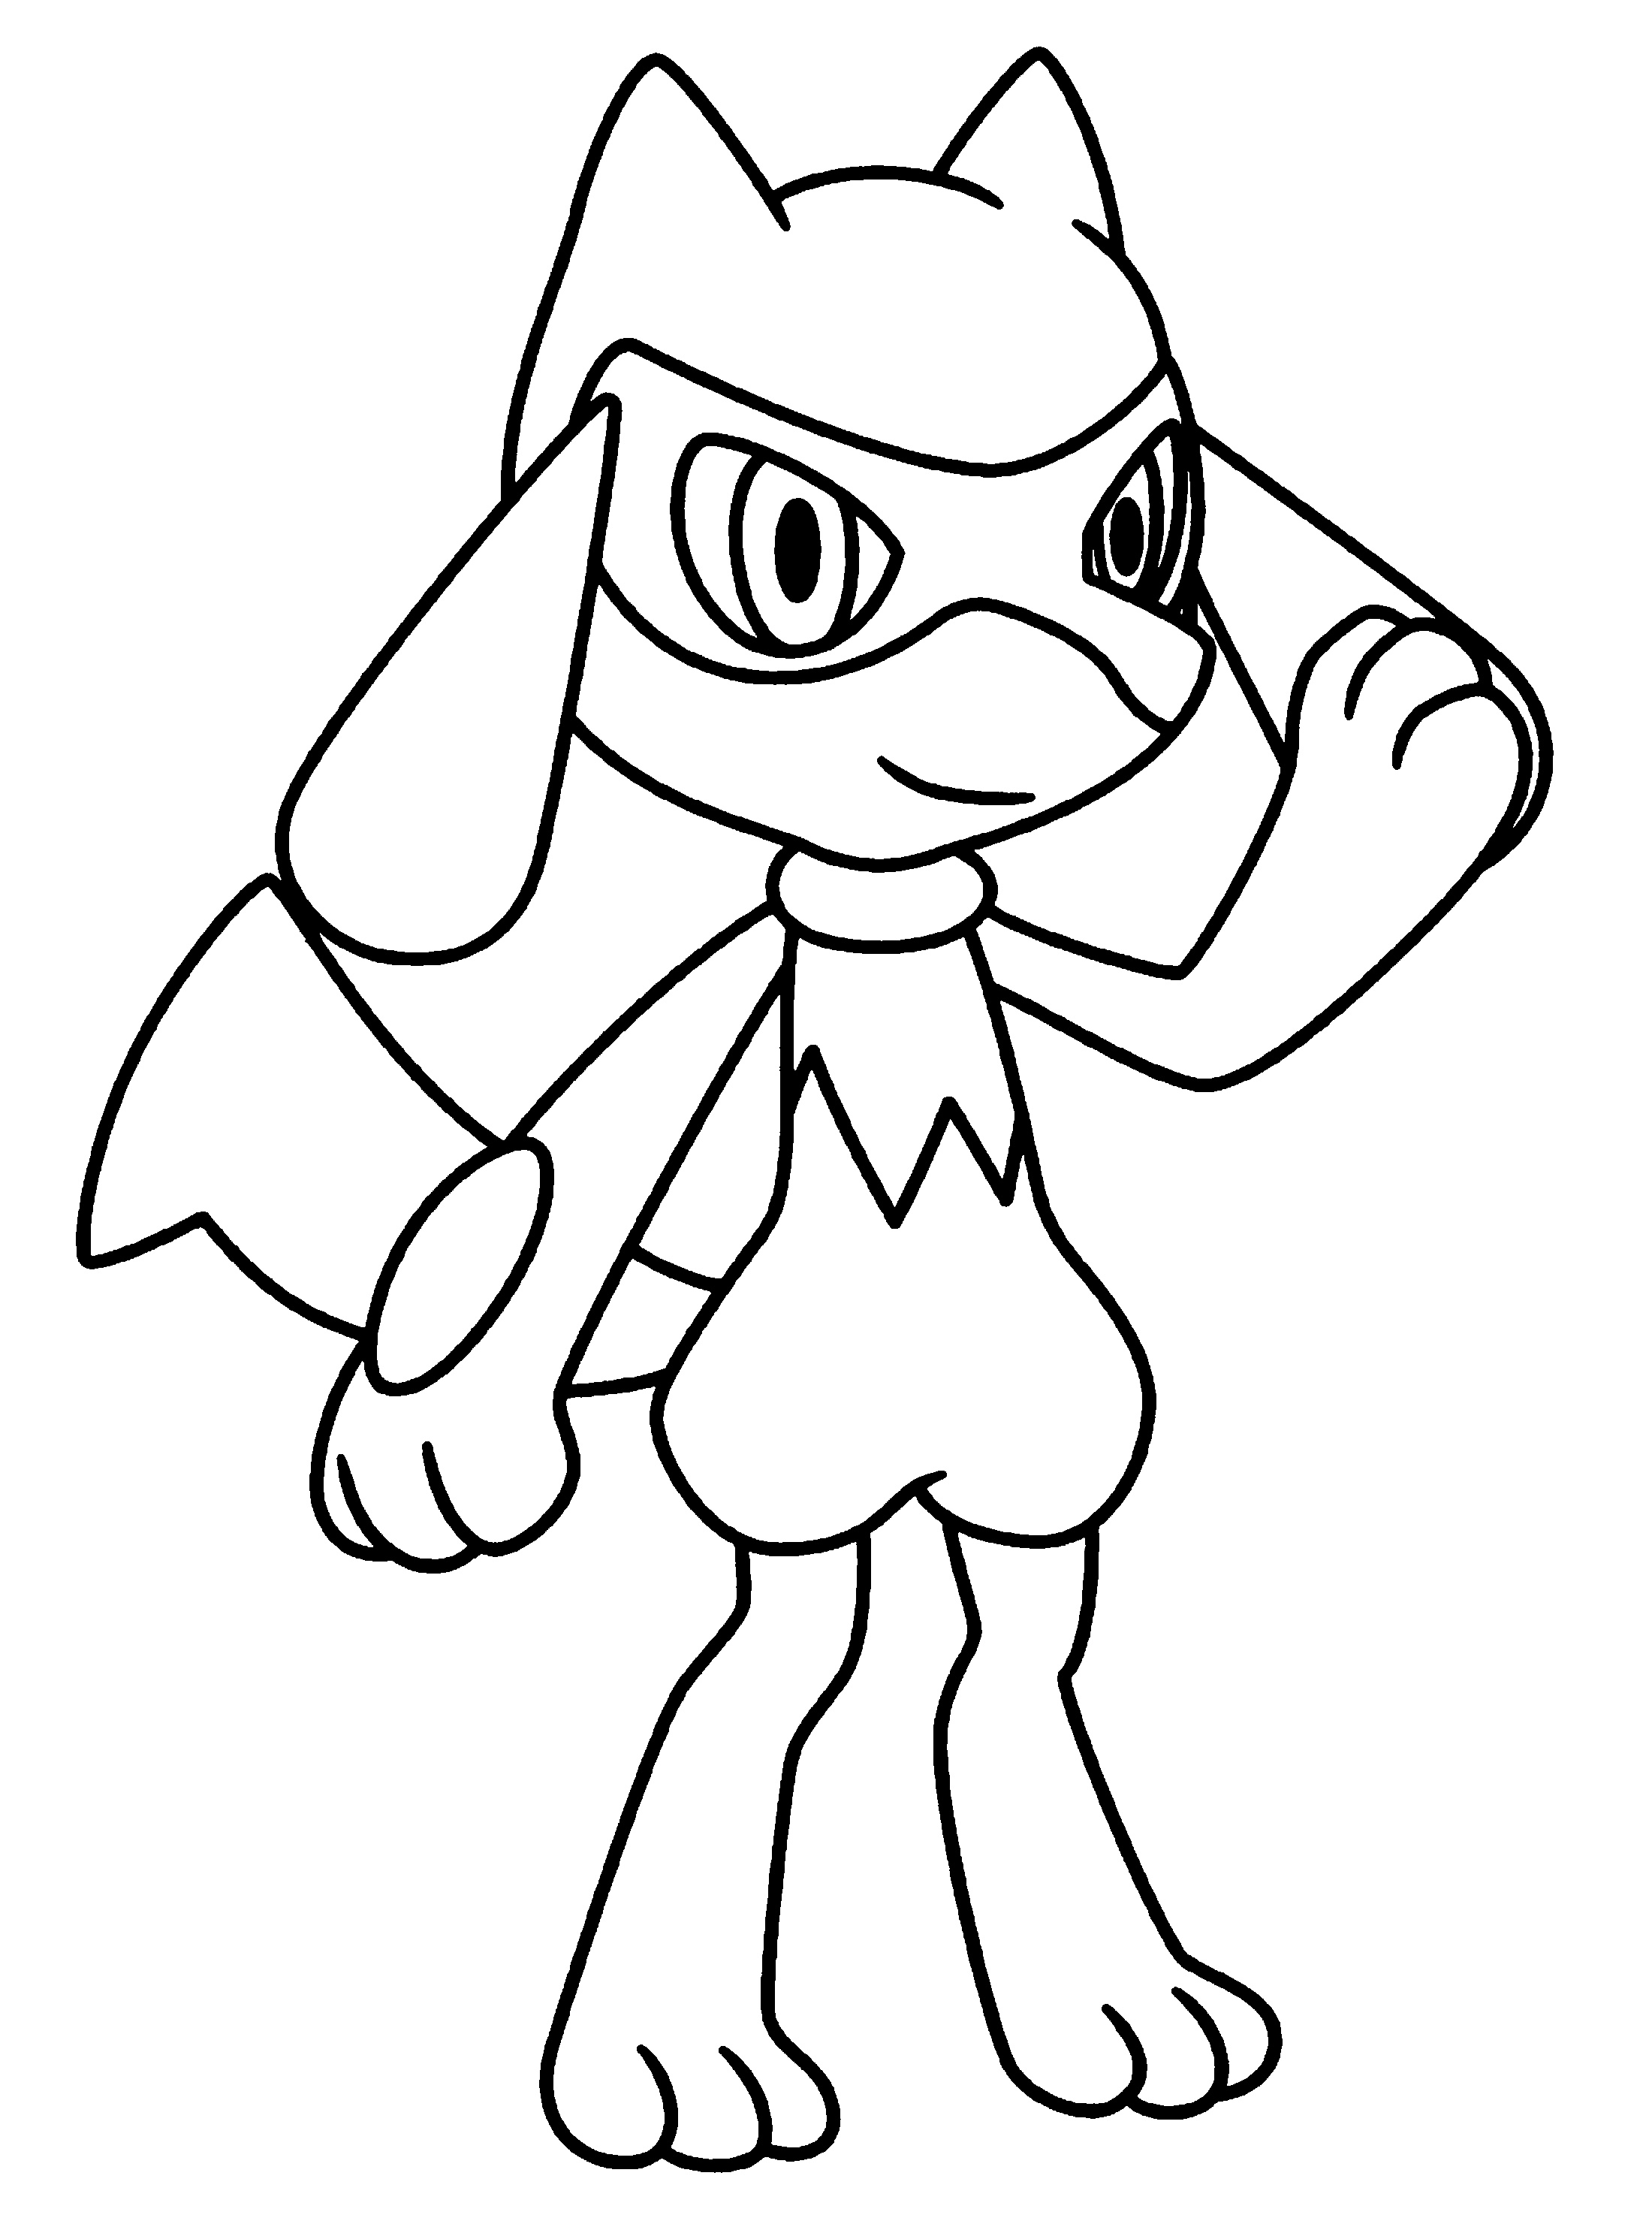 Lucario Coloring Page To Print